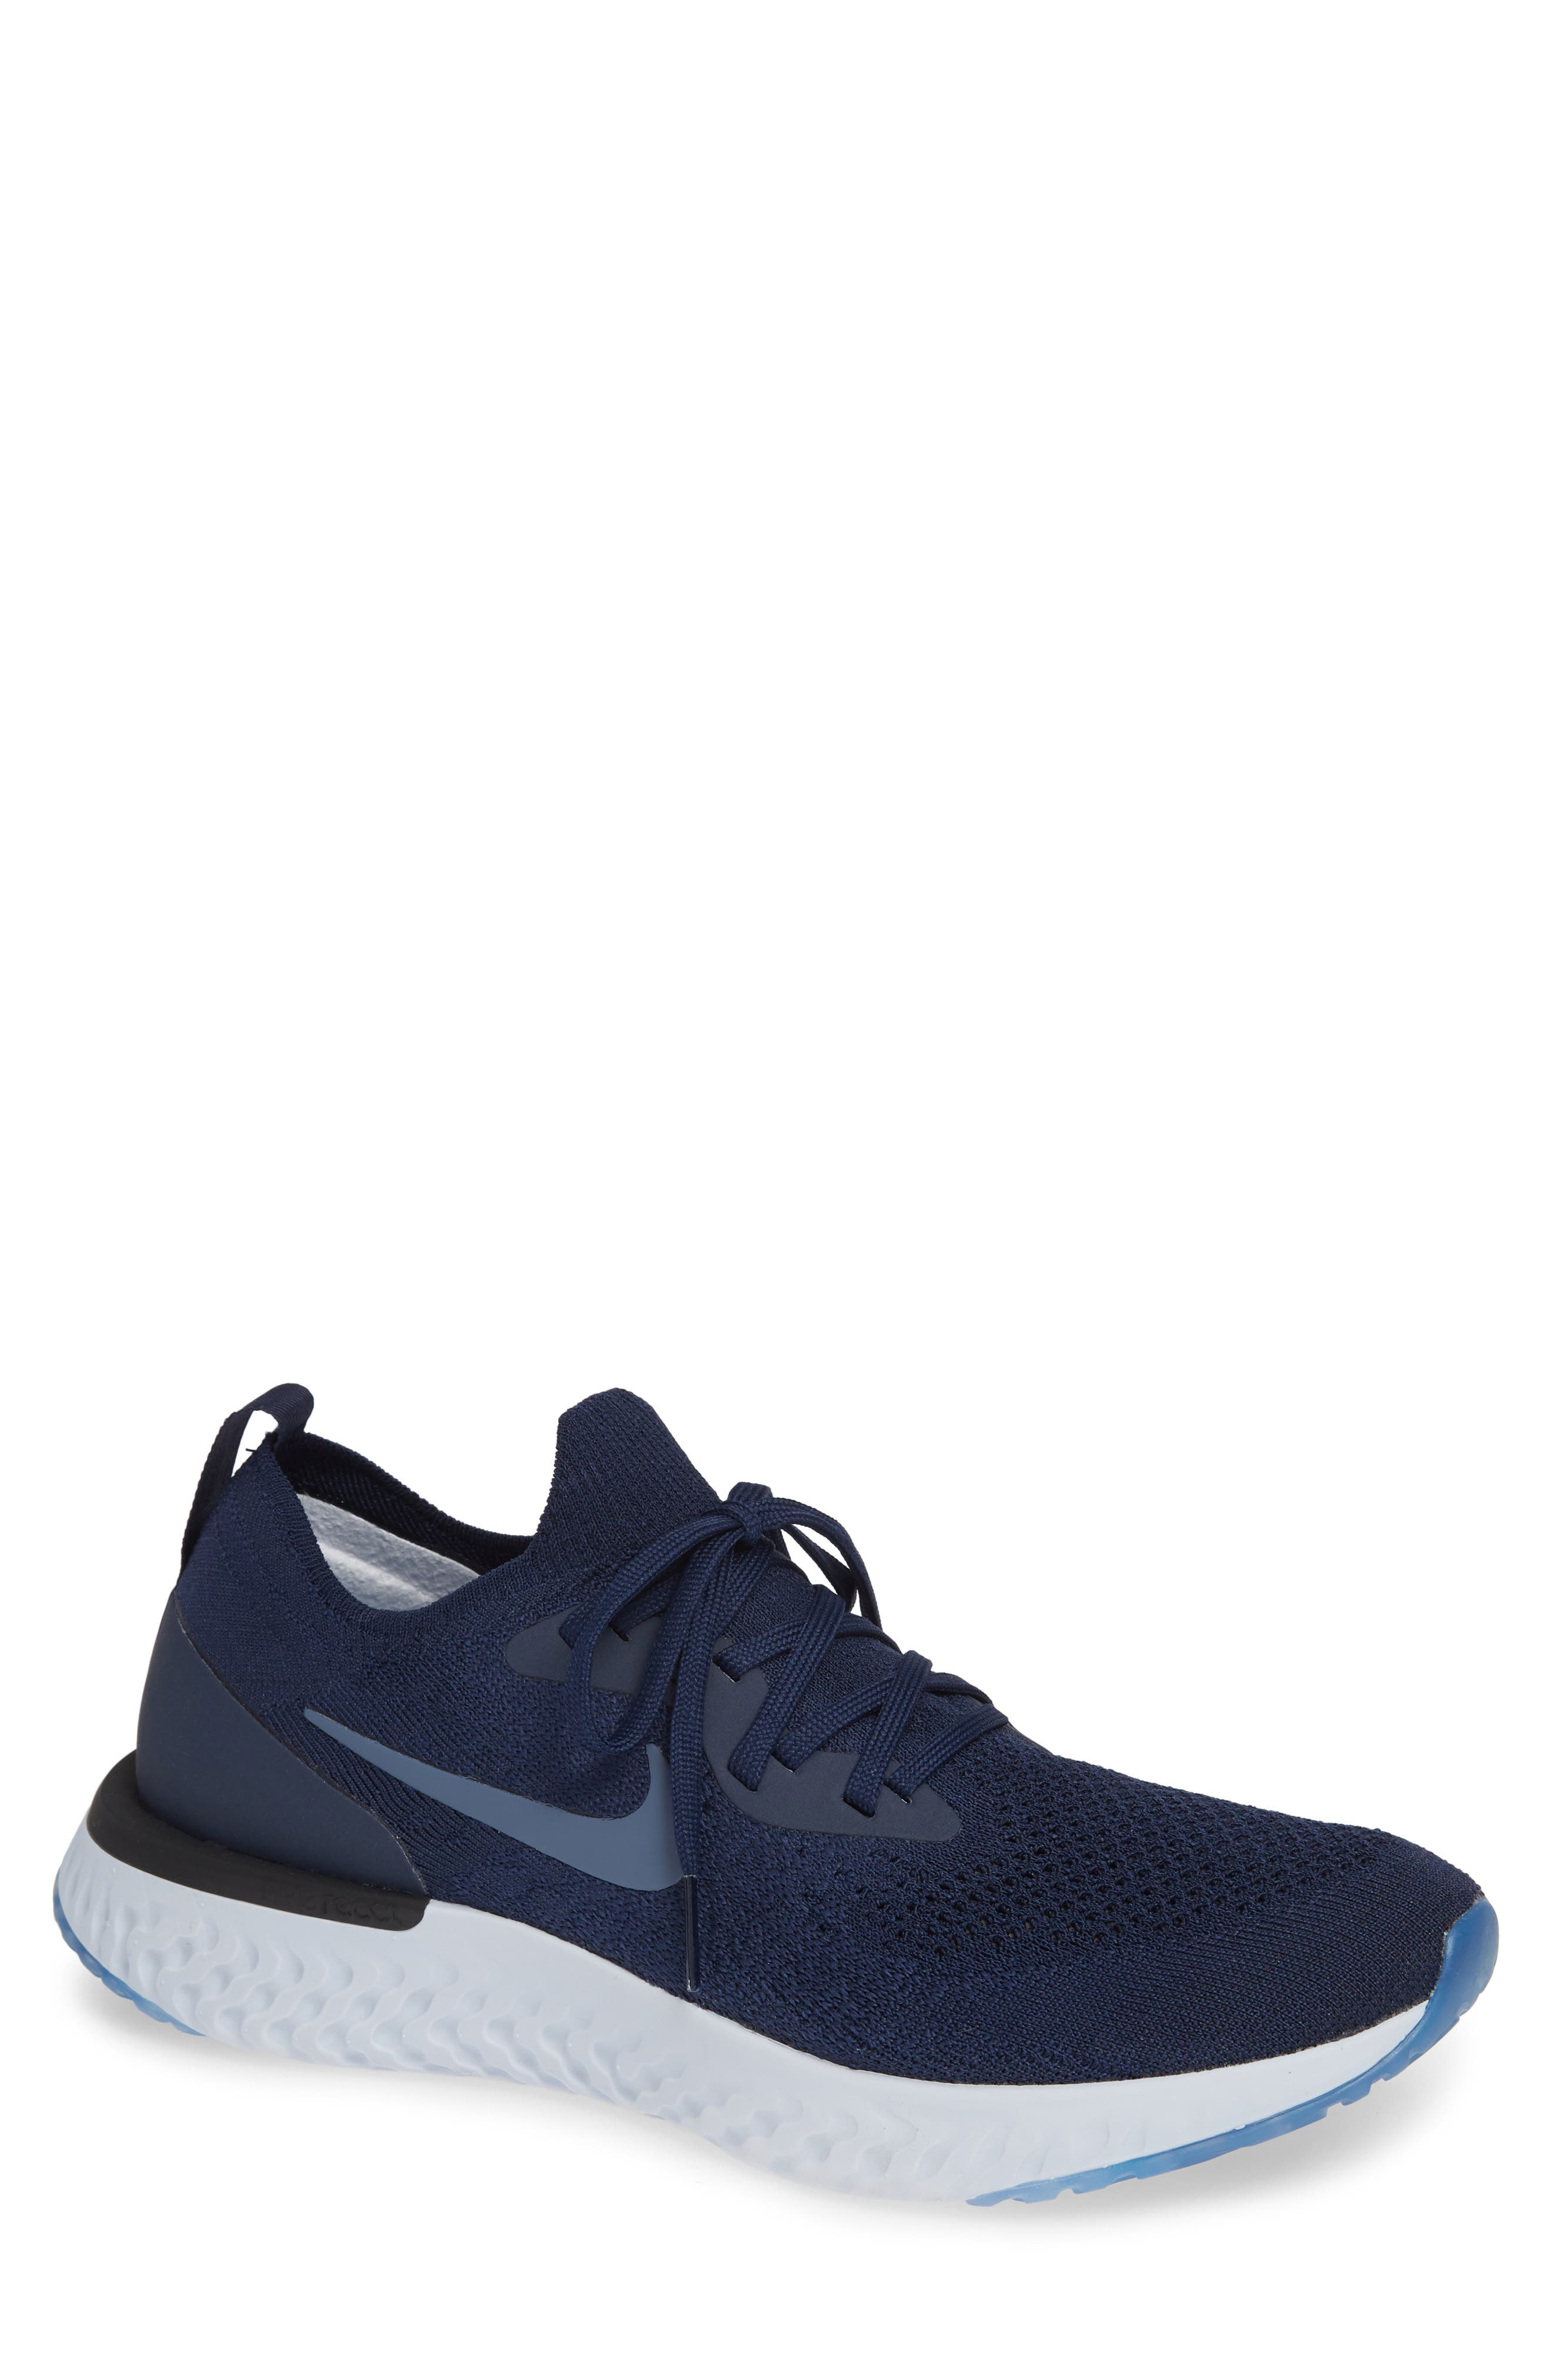 Epic React Flyknit Running Shoe,                             Main thumbnail 1, color,                             COLLEGE NAVY/ BLUE/ GREY